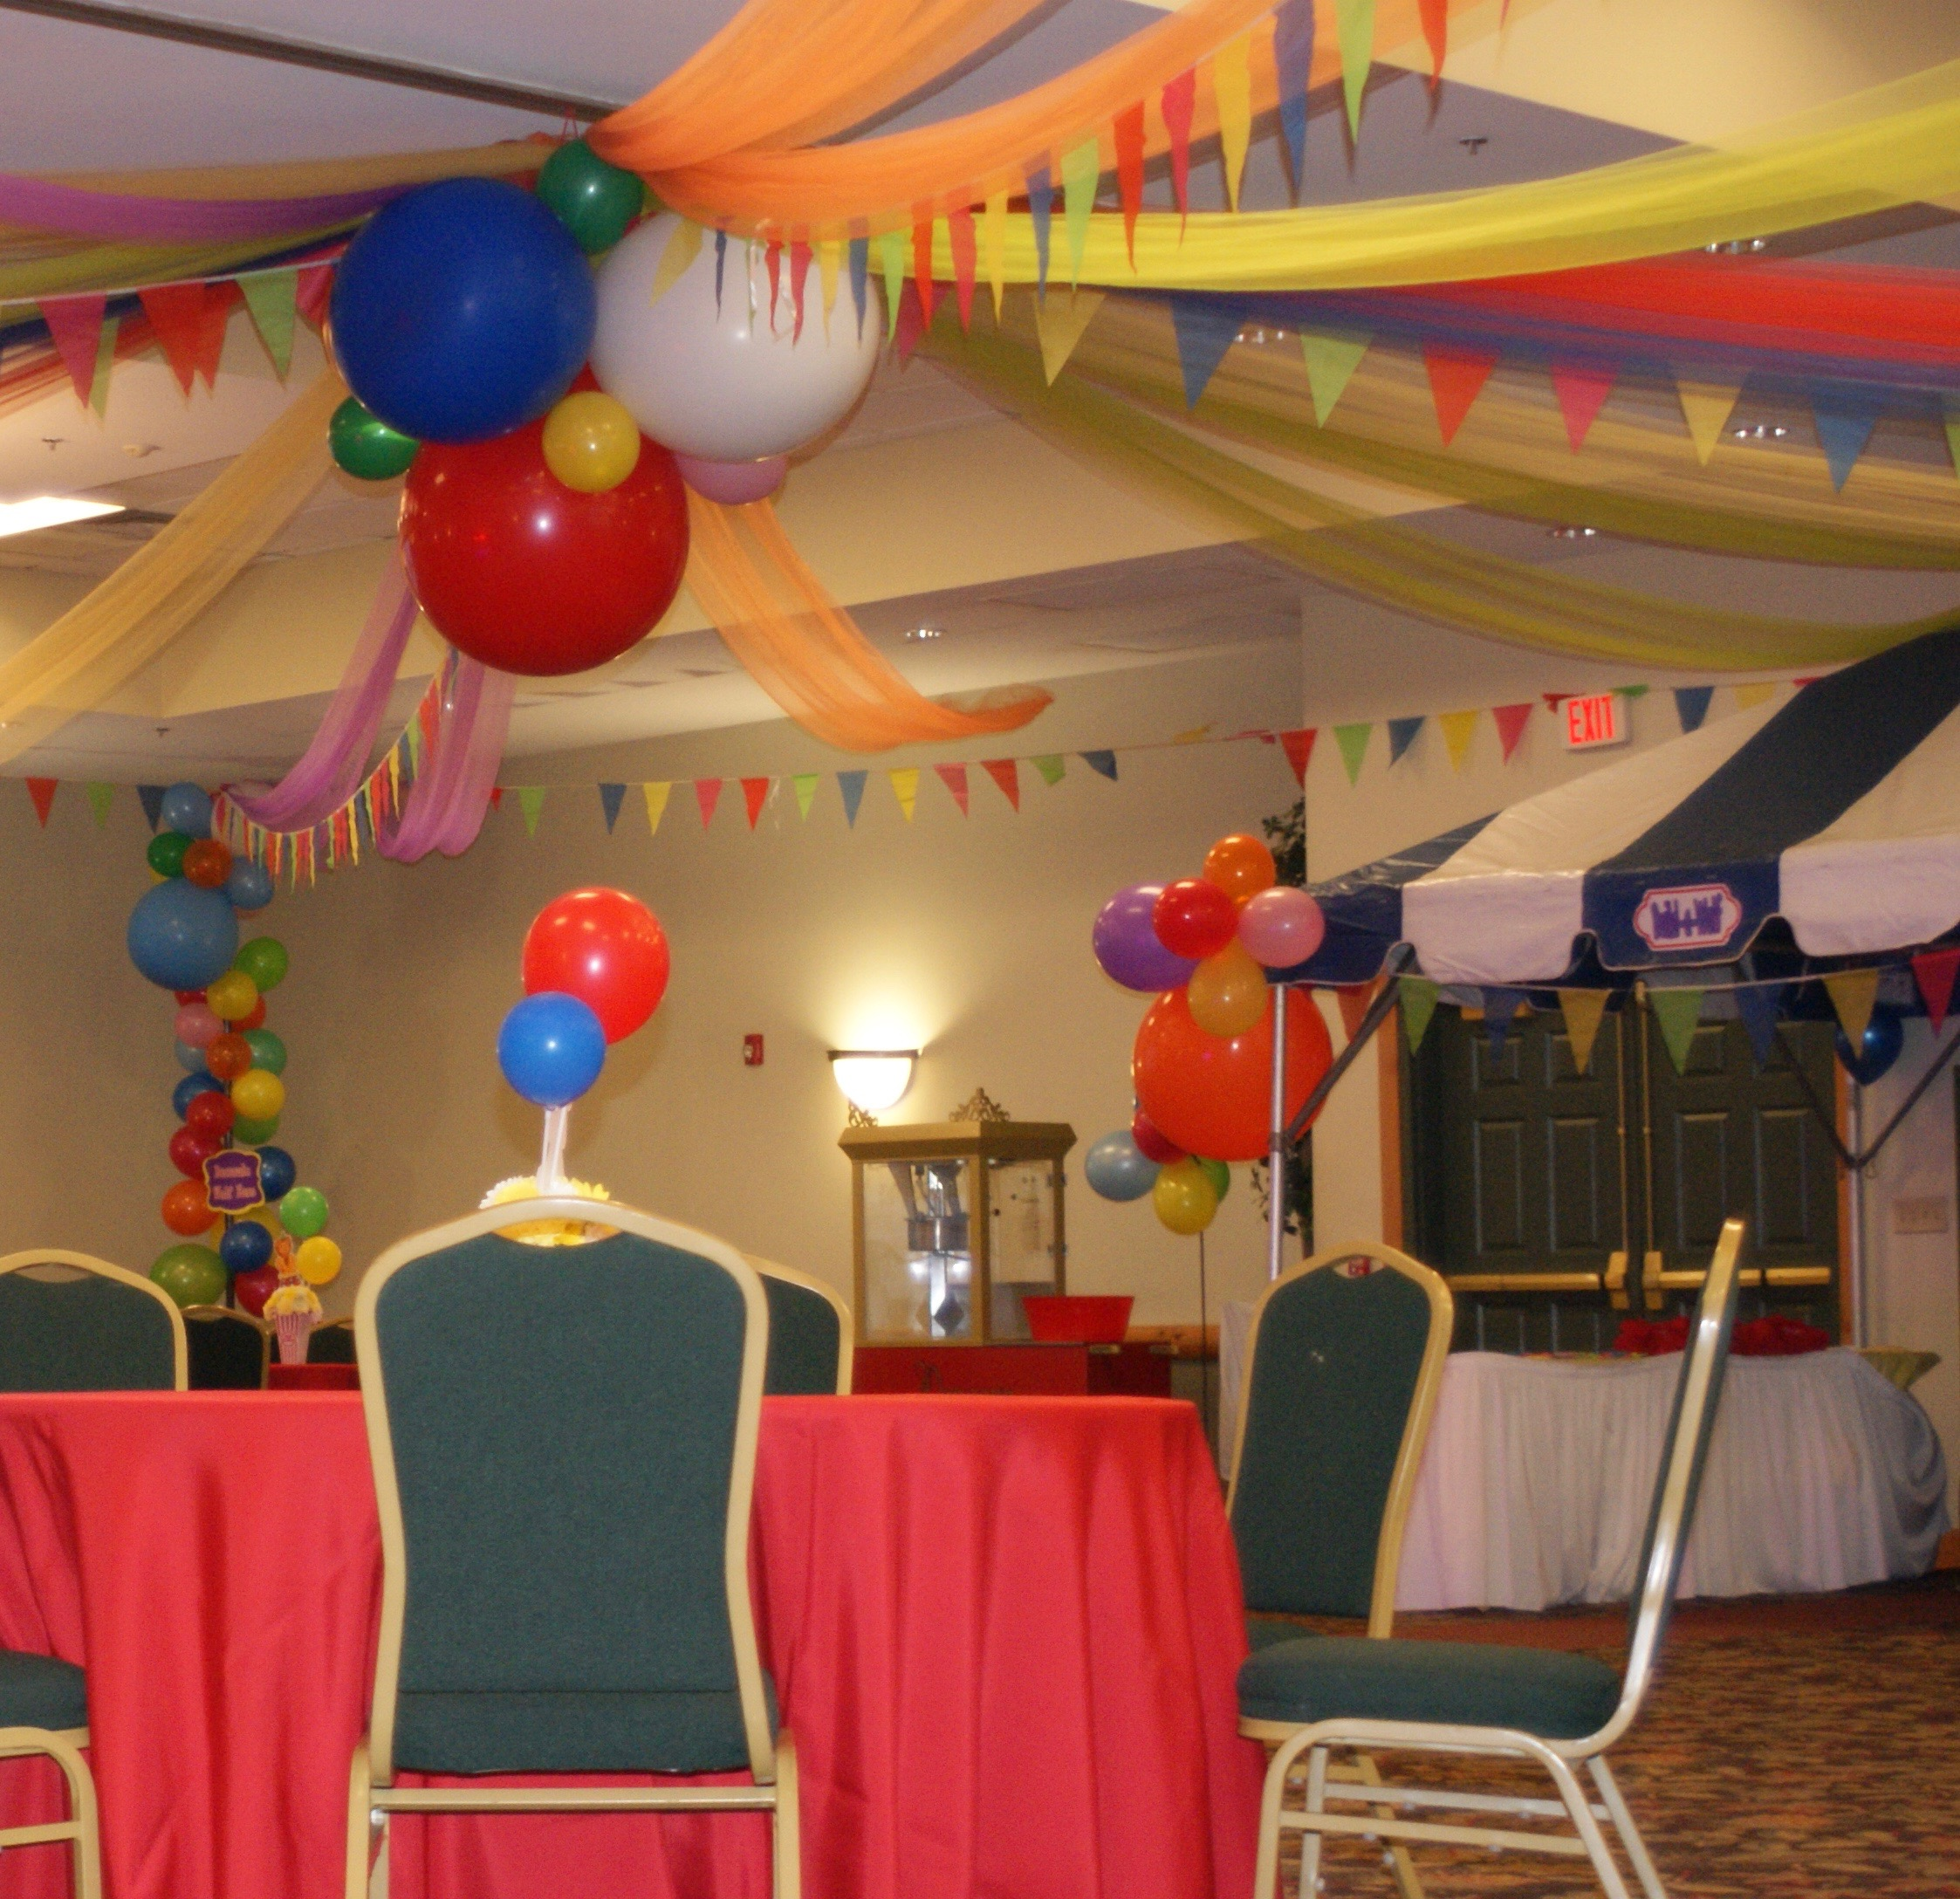 Ceiling Drape with tent.jpg